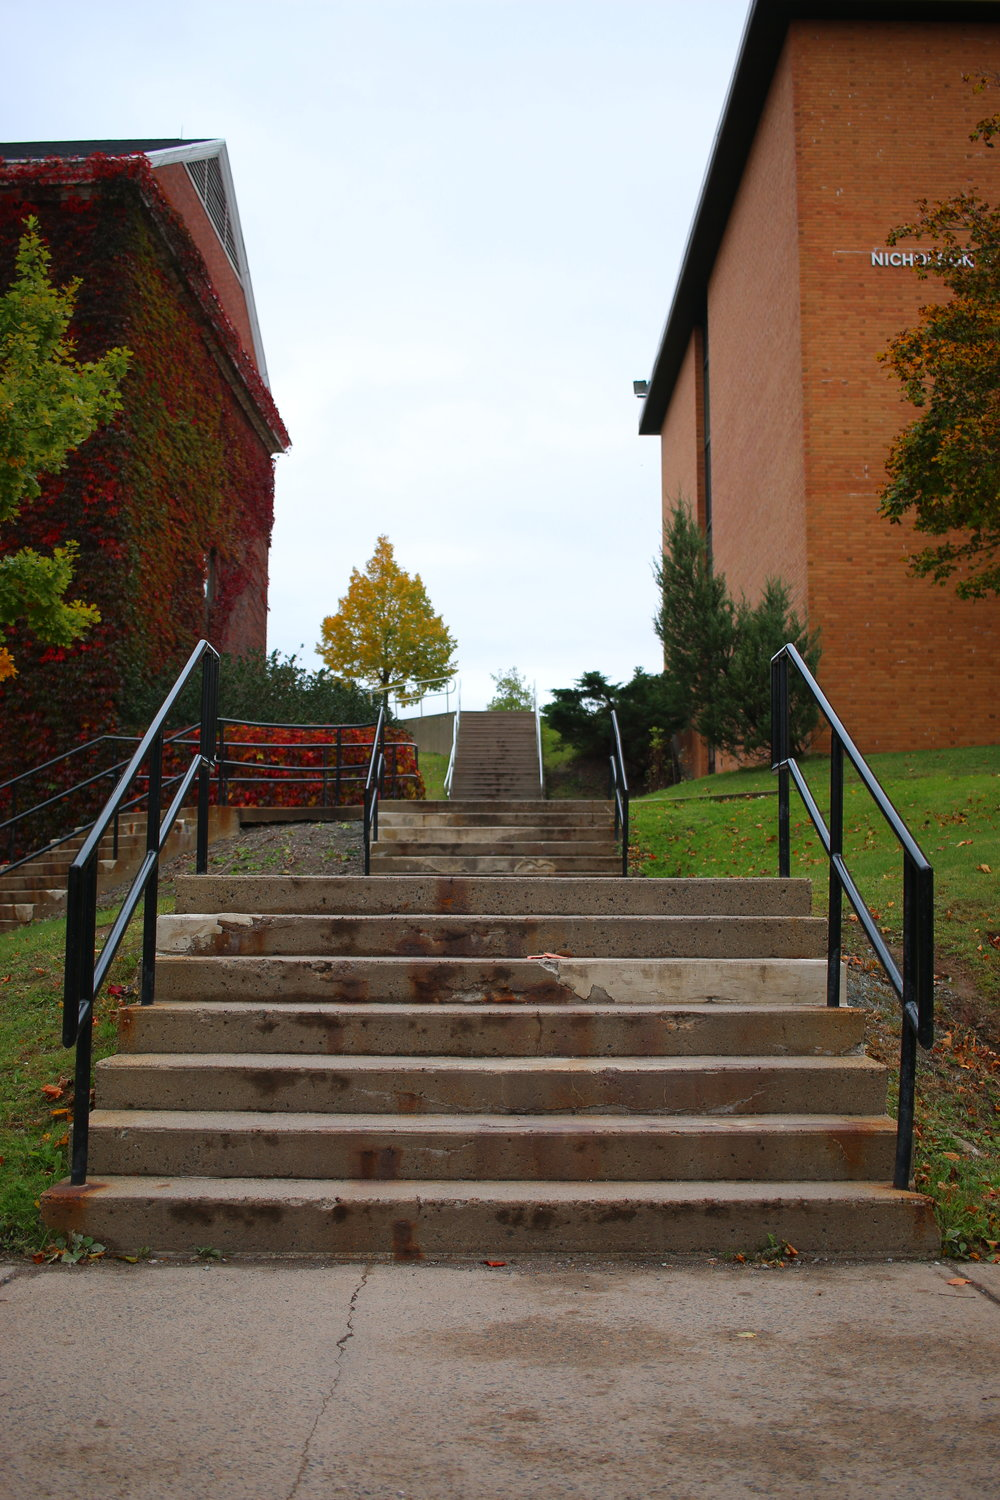 Multiple staircases prevent easy access to upper campus for those with mobility challenges. The construction of the Mulroney Institute will lower the grade of the hill and allow for wheelchair access.